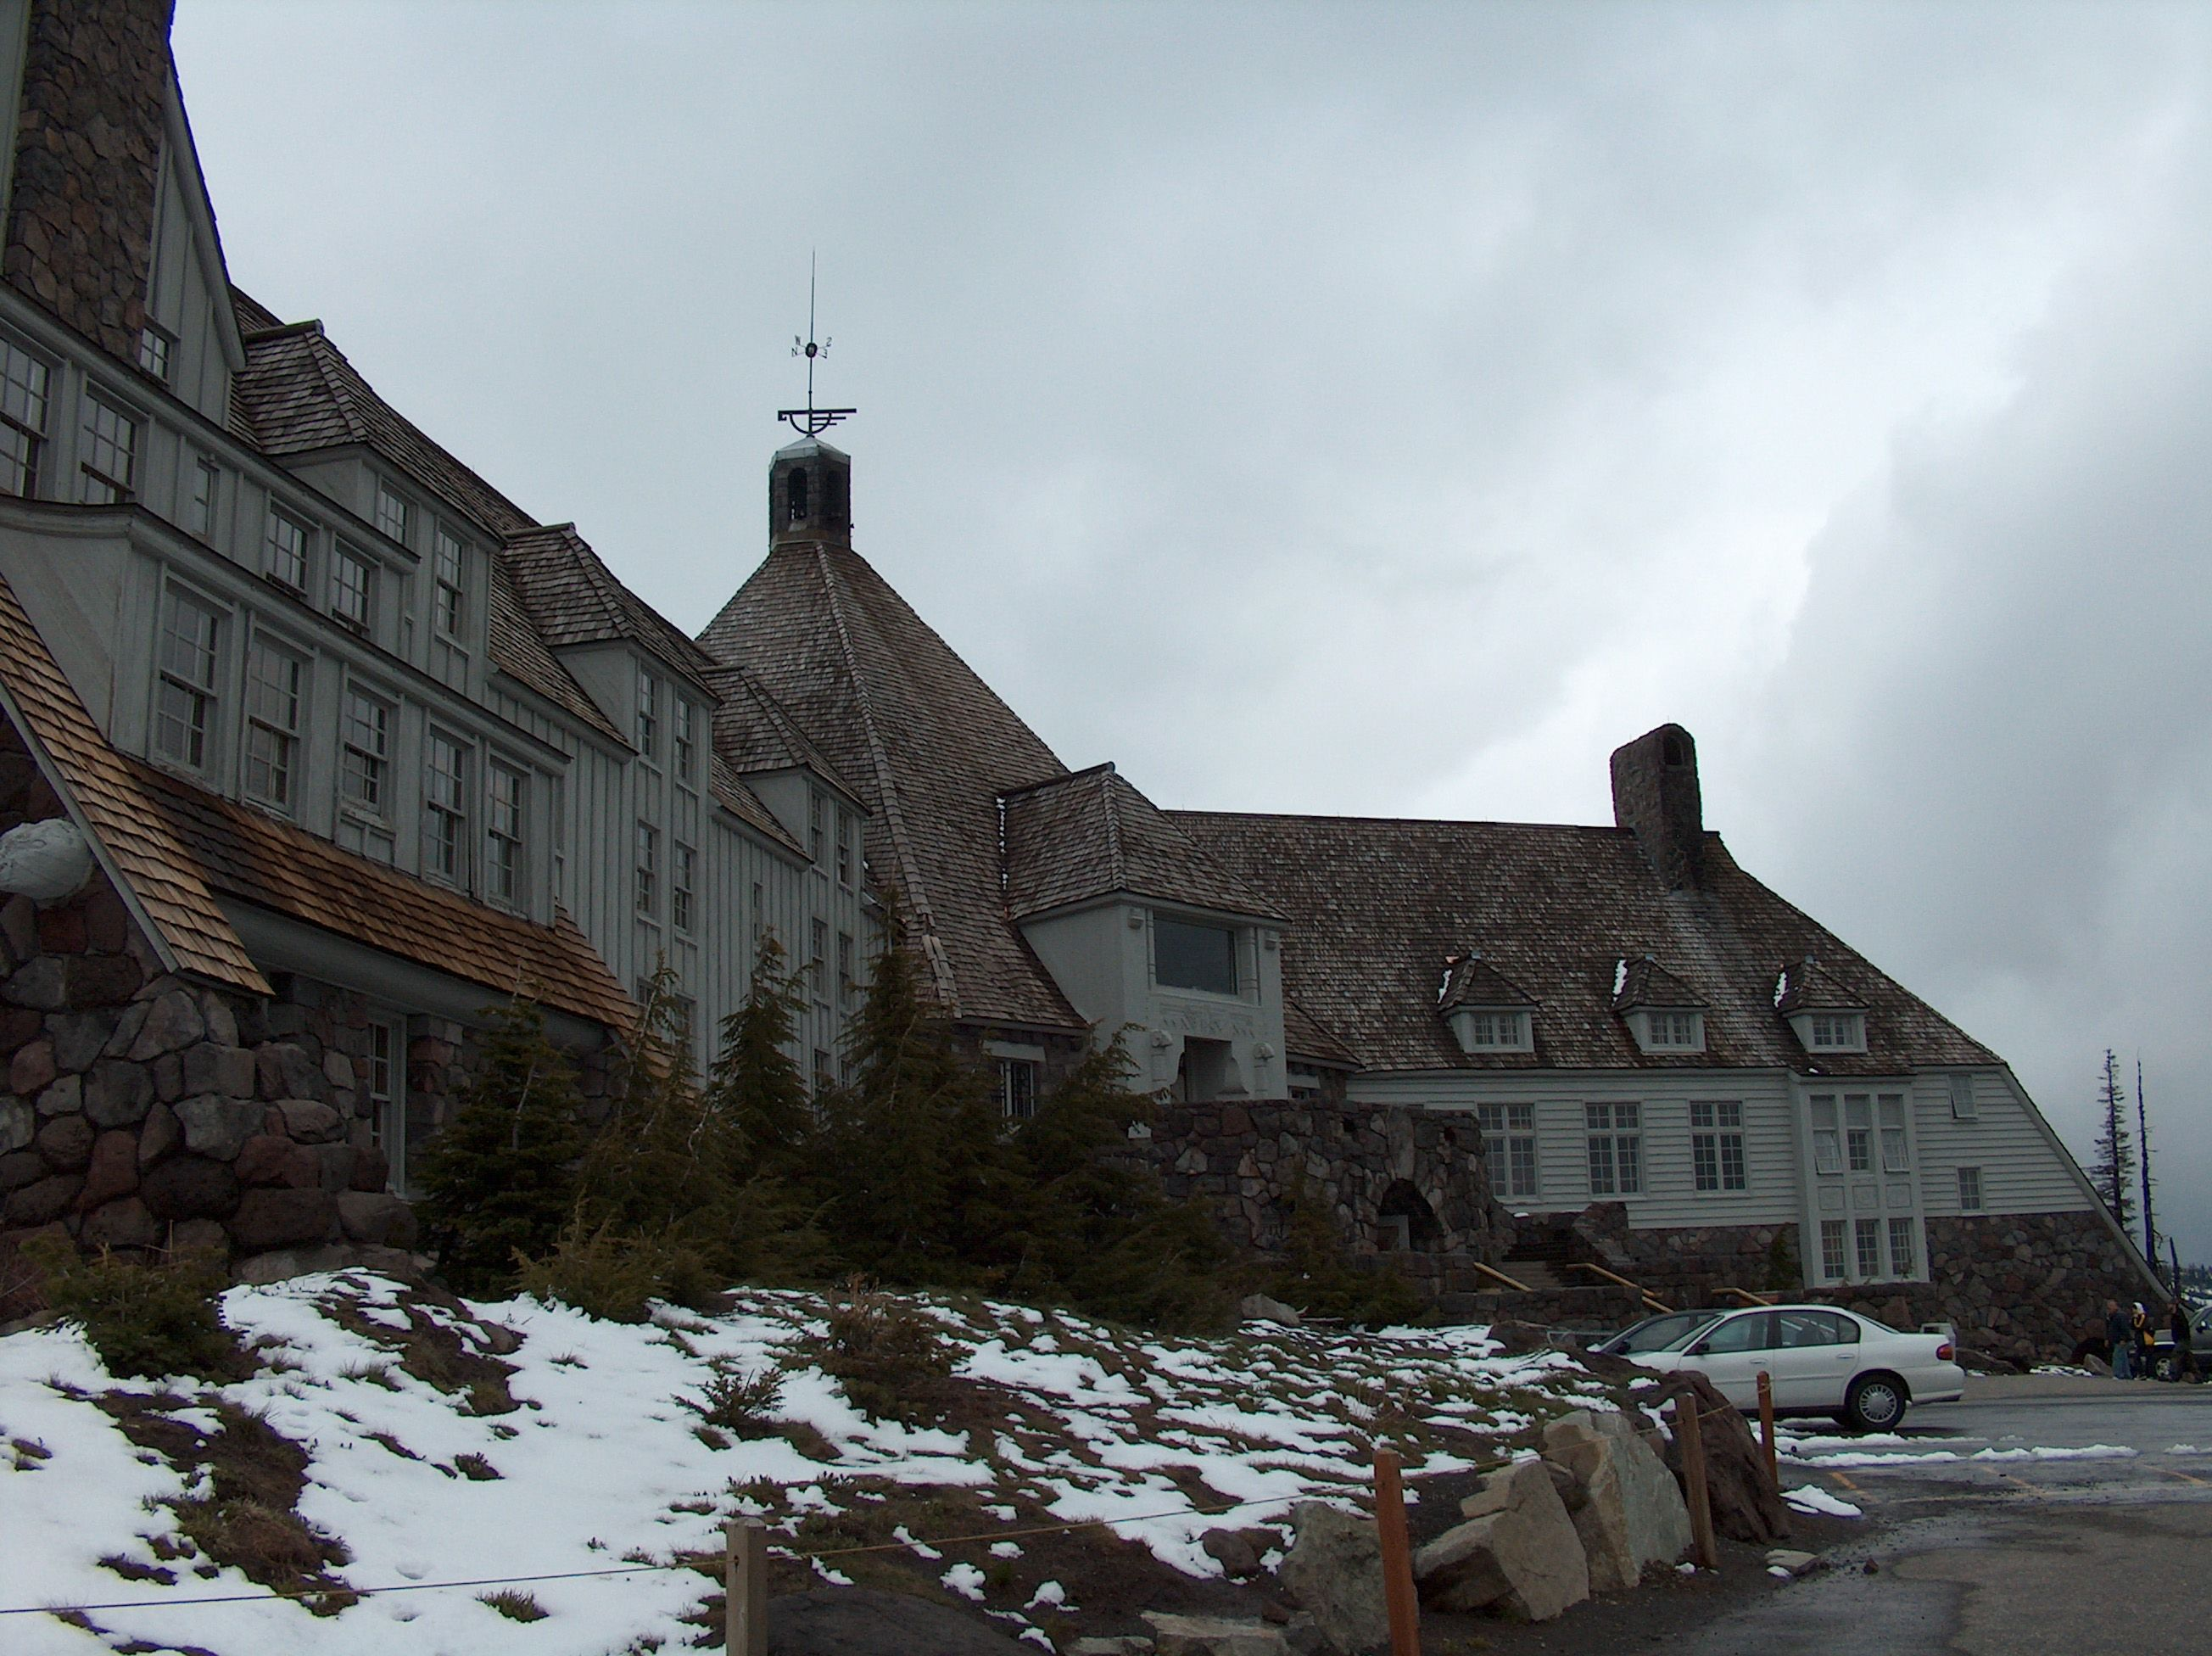 The Shining Film Location For Overlook Hotel Timberline Lodge In Mount Hood Oregon